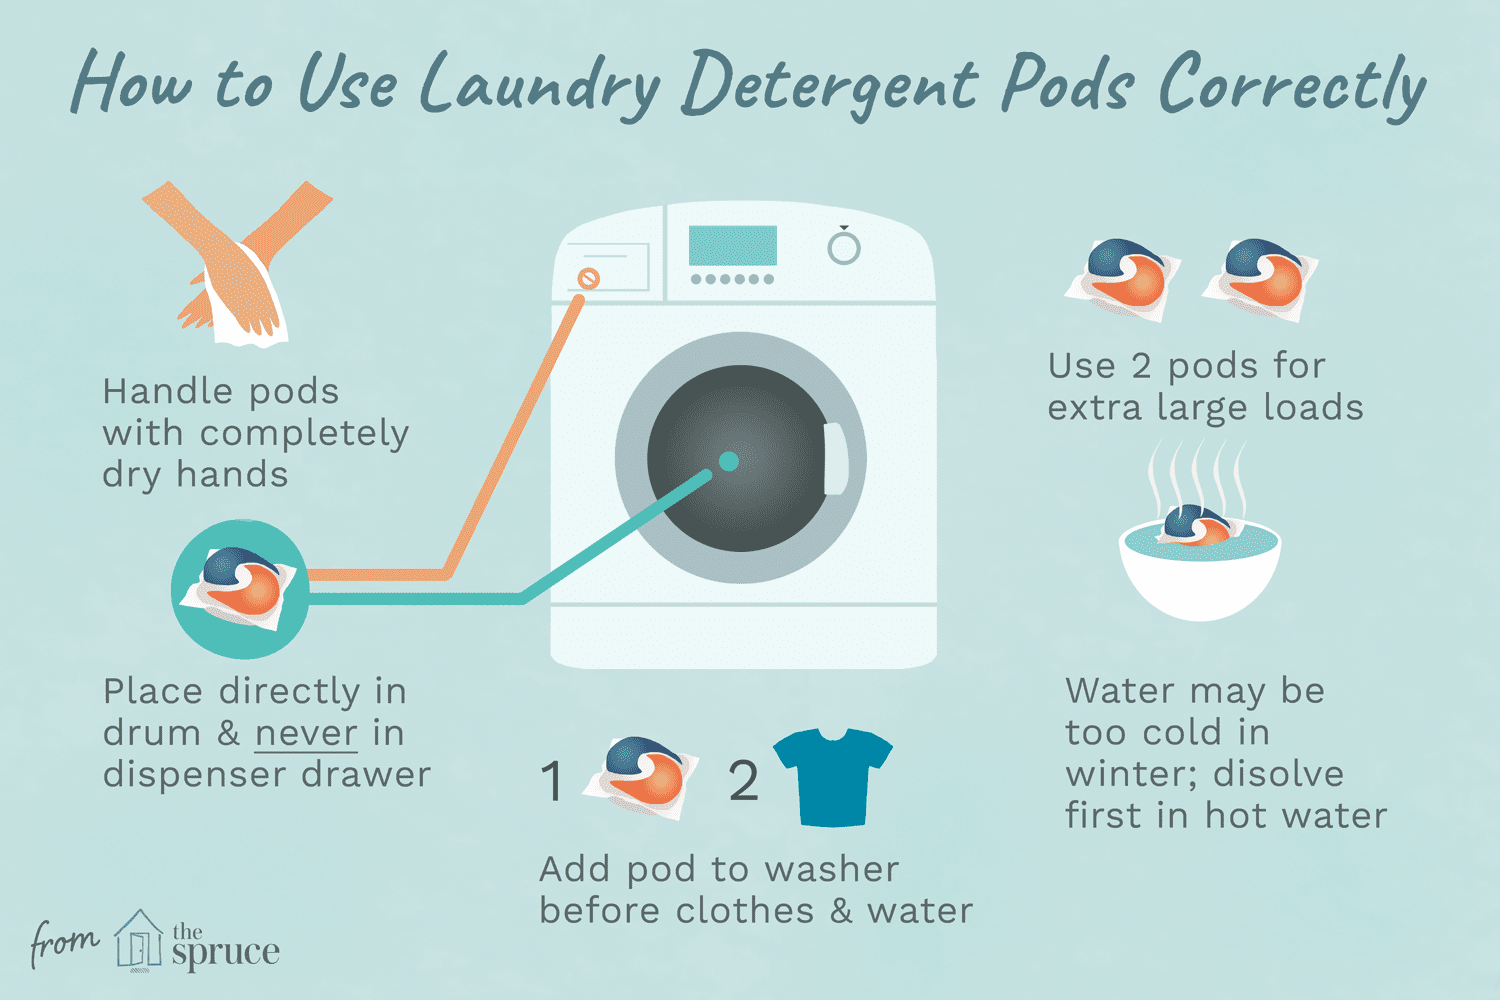 Are You Using Single Dose Laundry Pods Correctly Laundry Pods